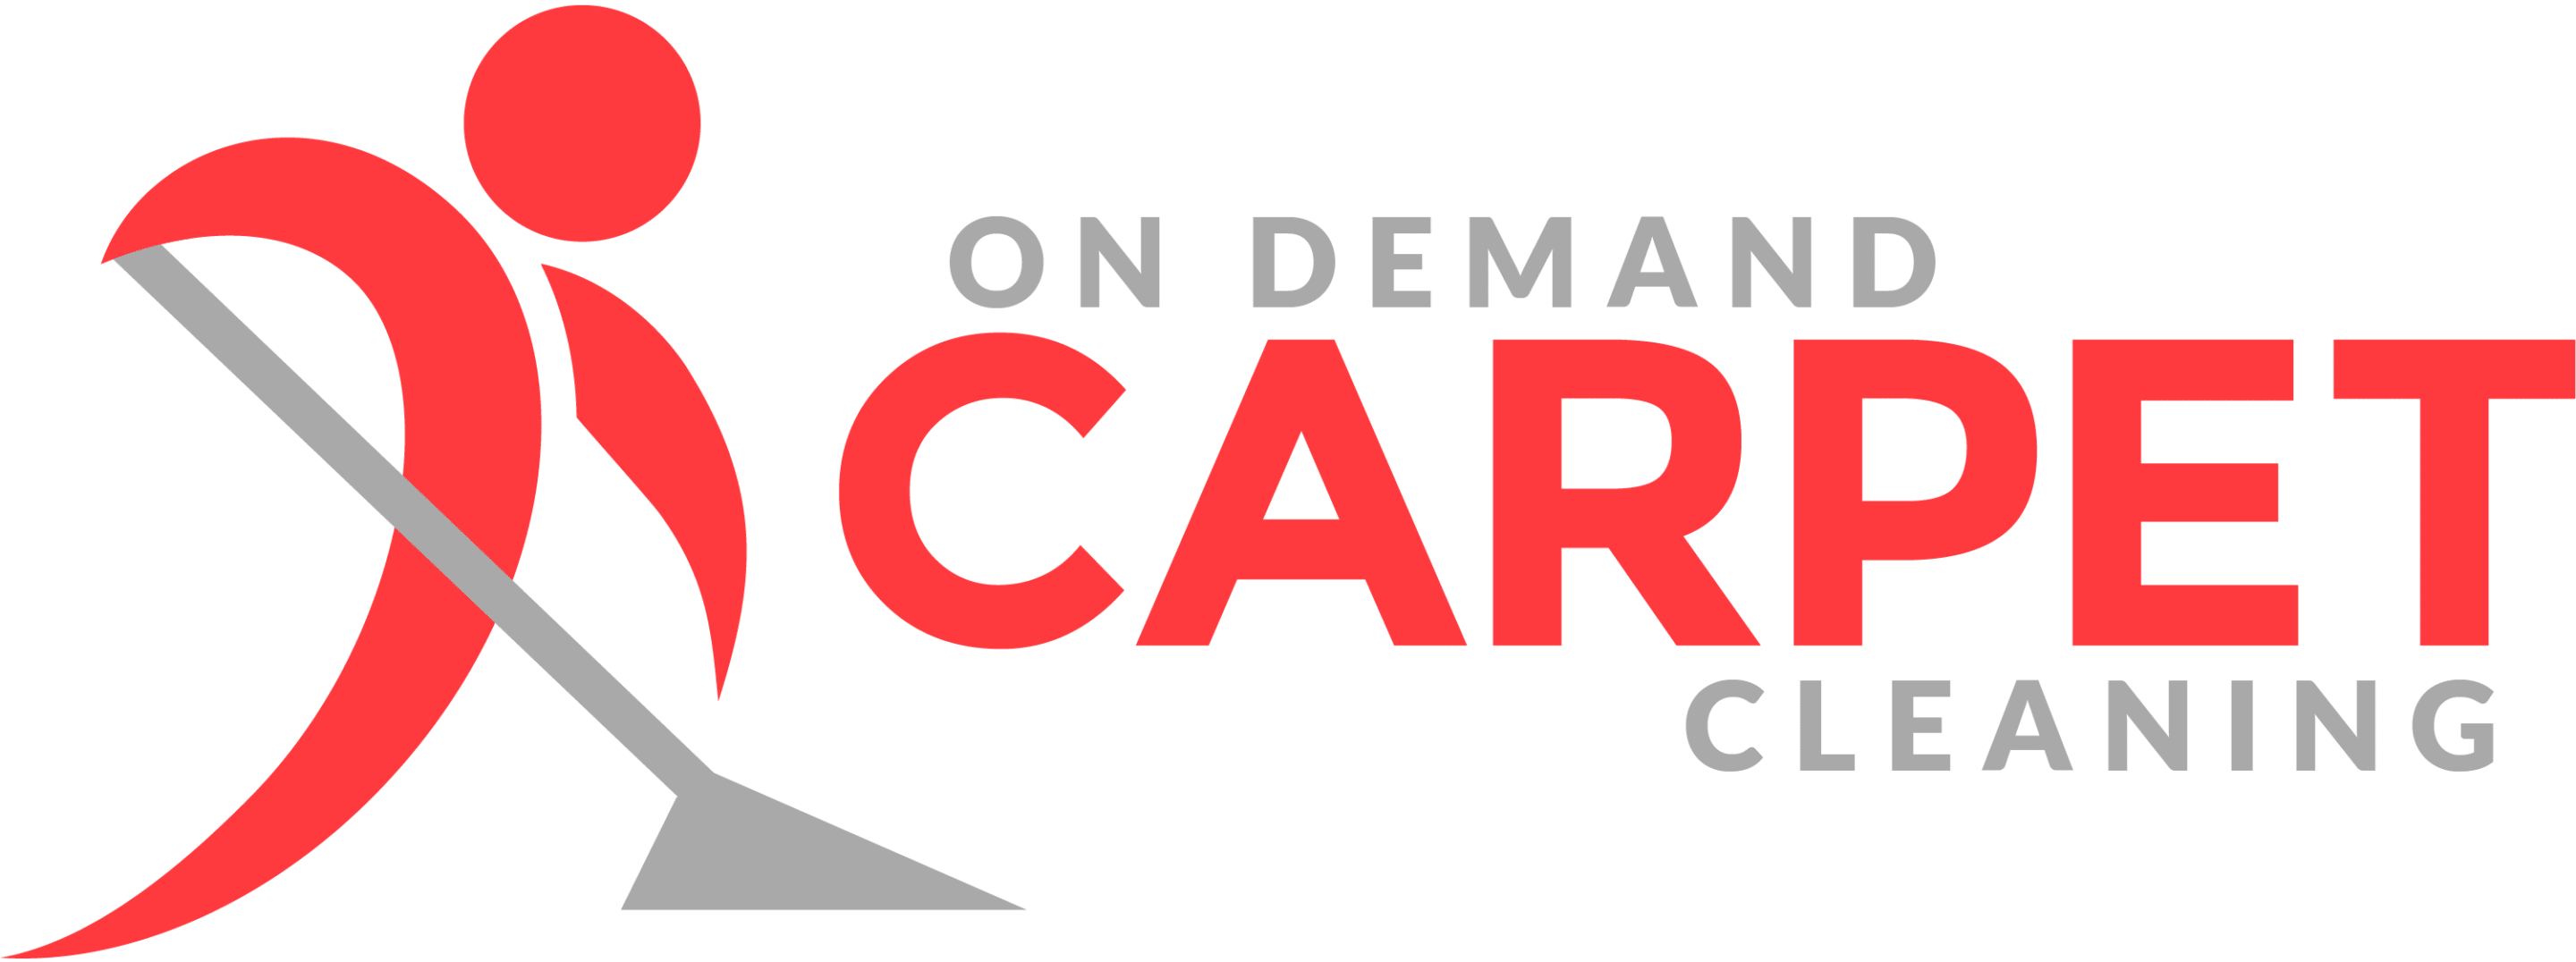 On Demand Carpet Cleaning